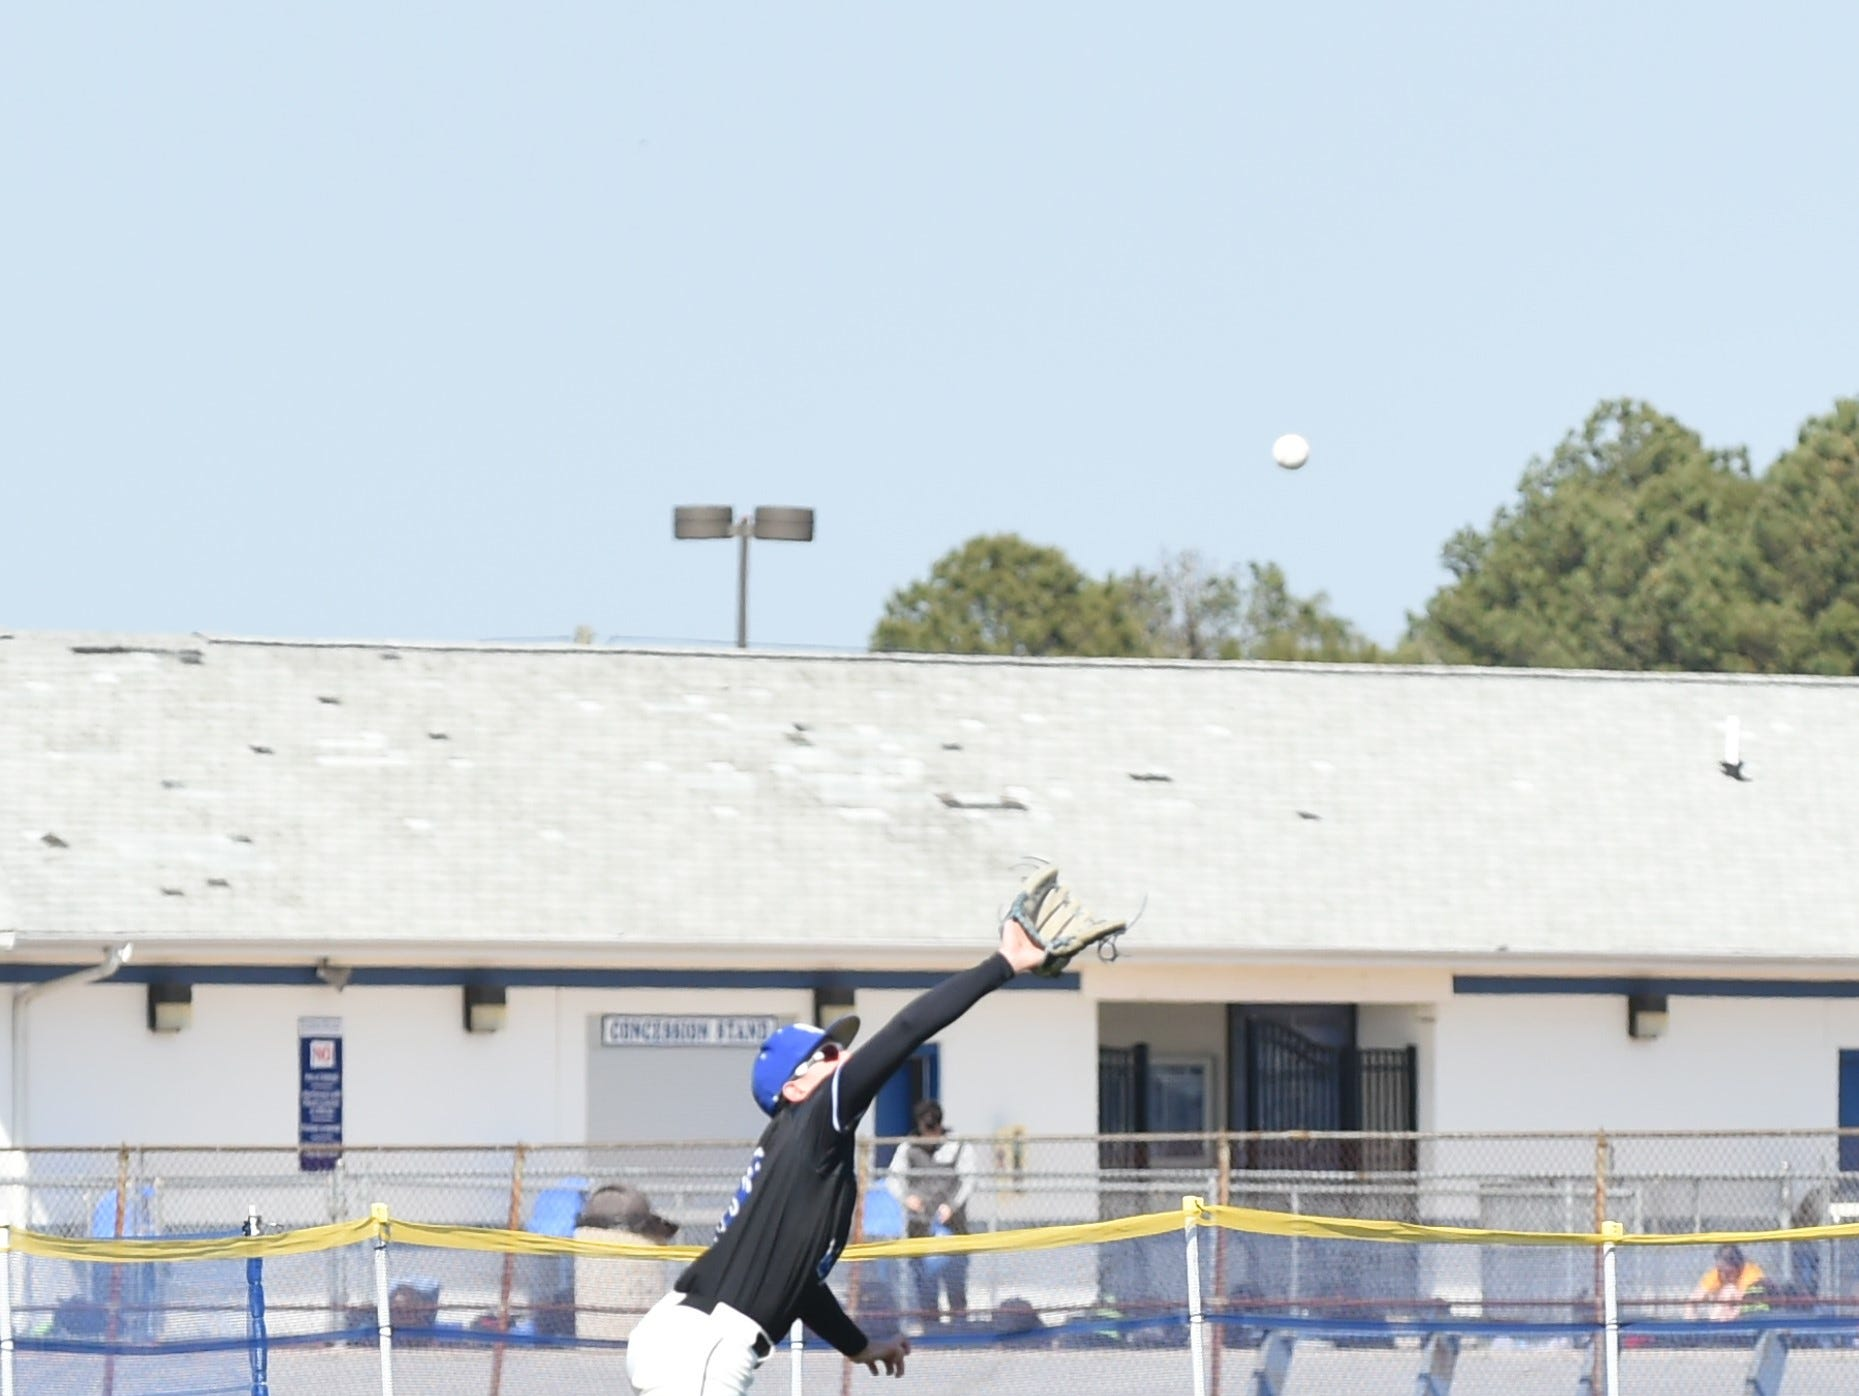 Stephen Decatur outfielder Jack Rosenberg goes for the catch on Wednesday, April 3, 2019.